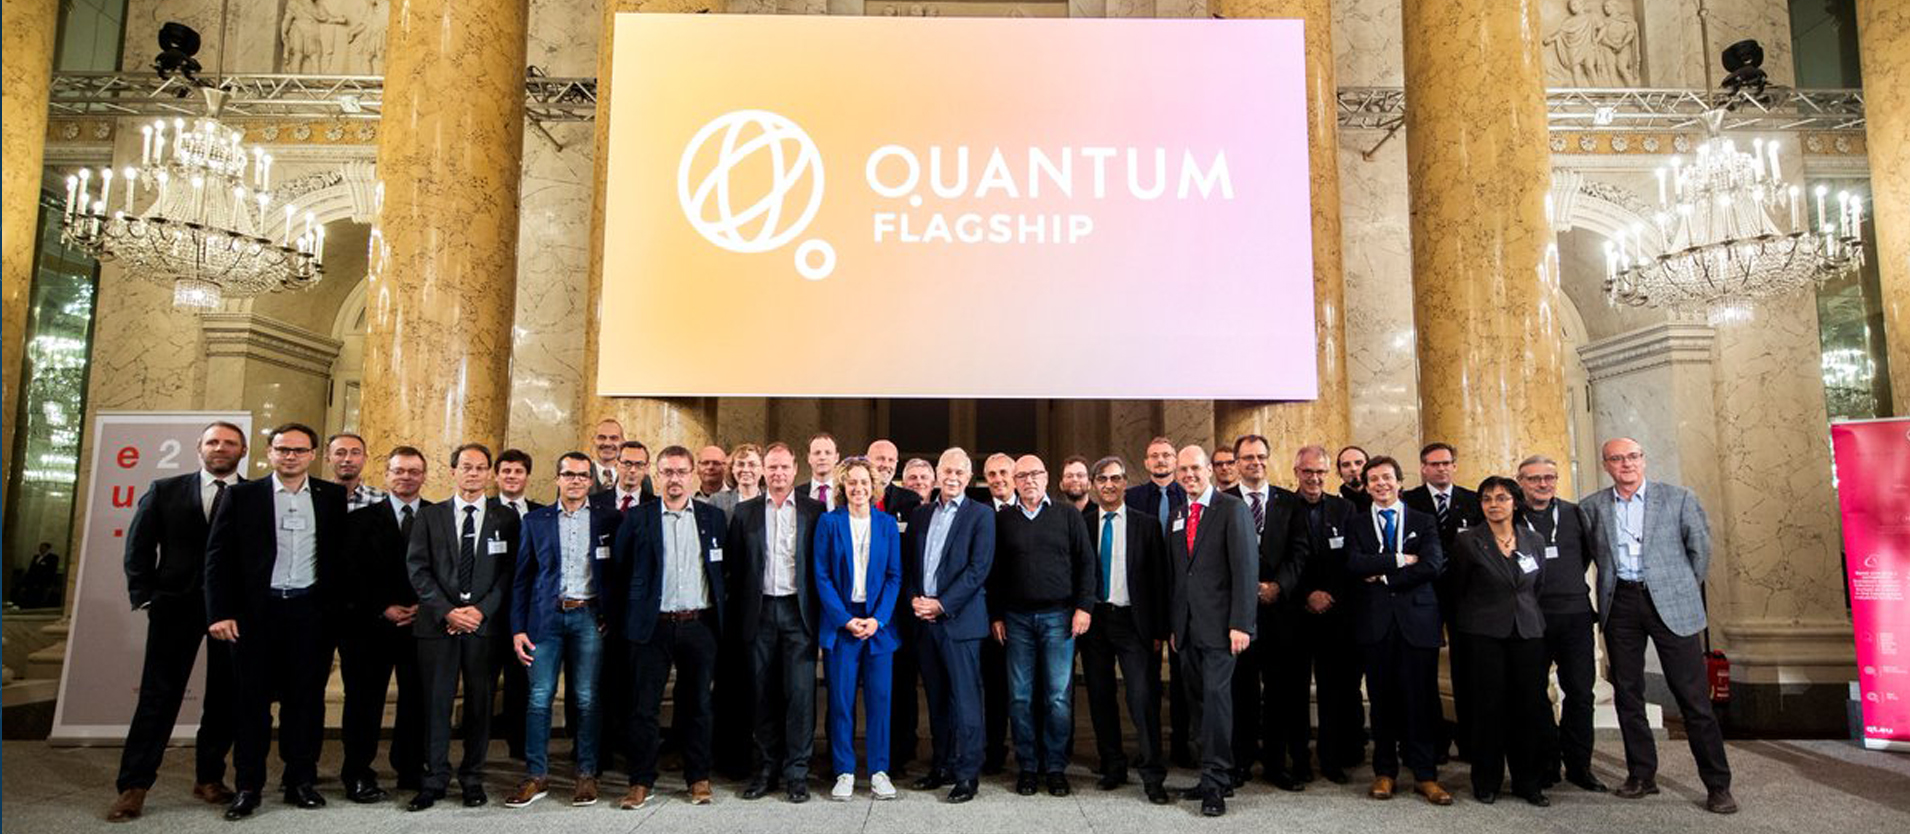 Quantum Flagship Kickoff: EU invests €1 billion in quantum technologies